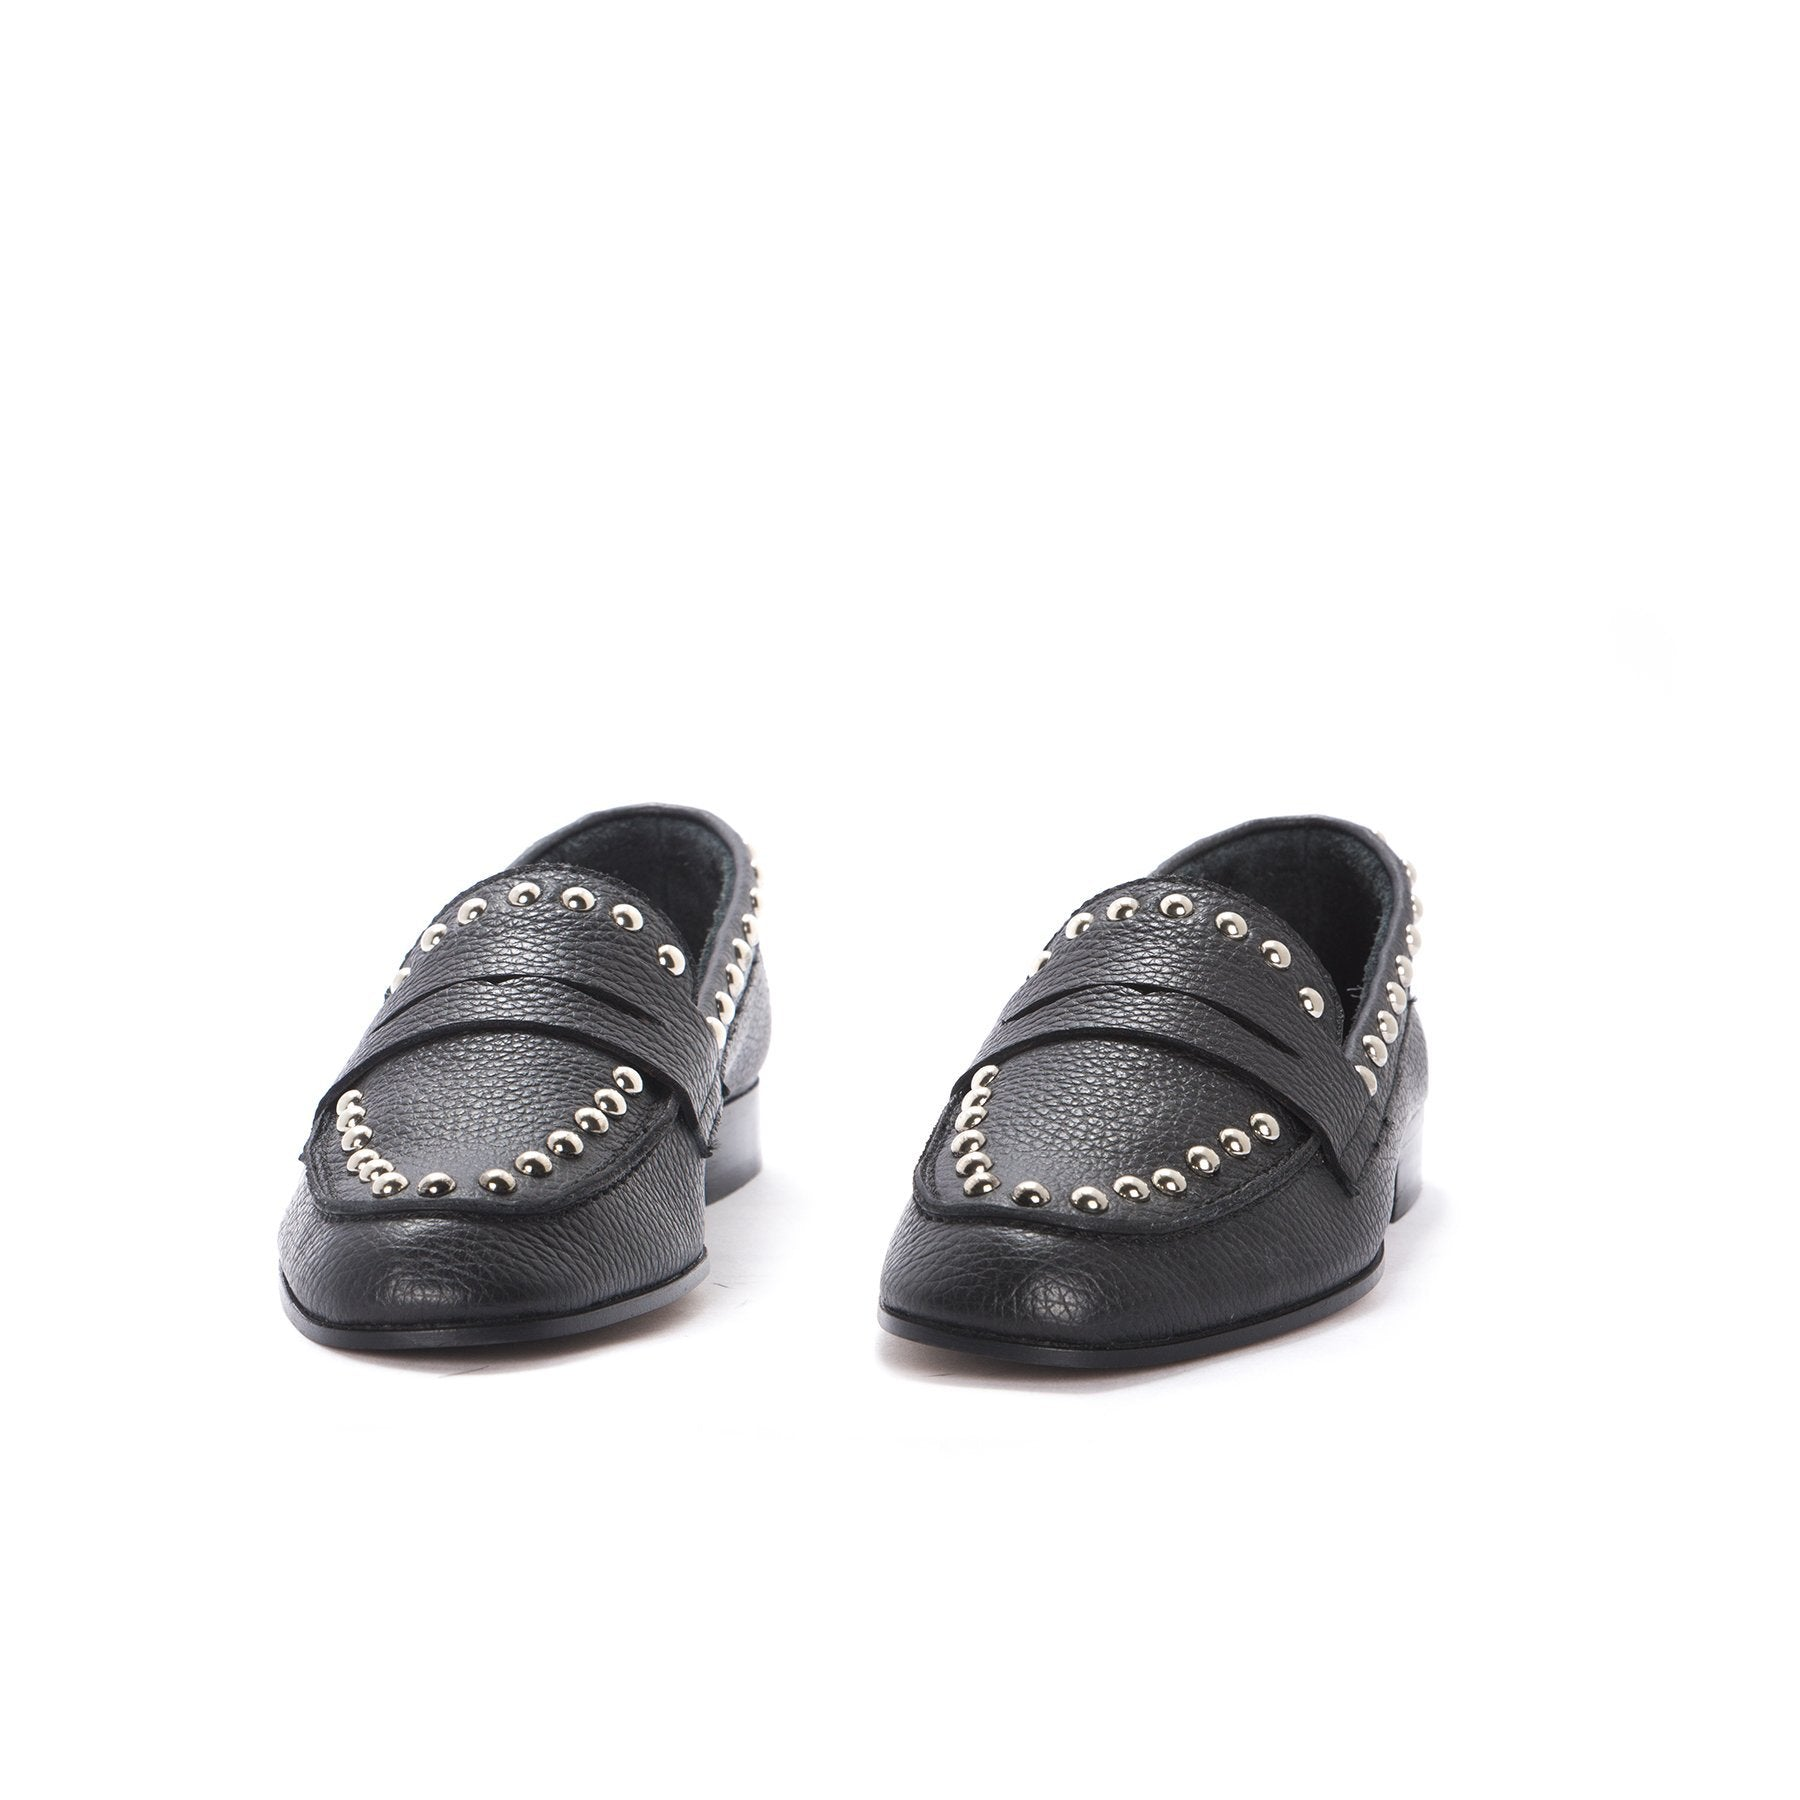 Amira Black Leather-SOLD OUT